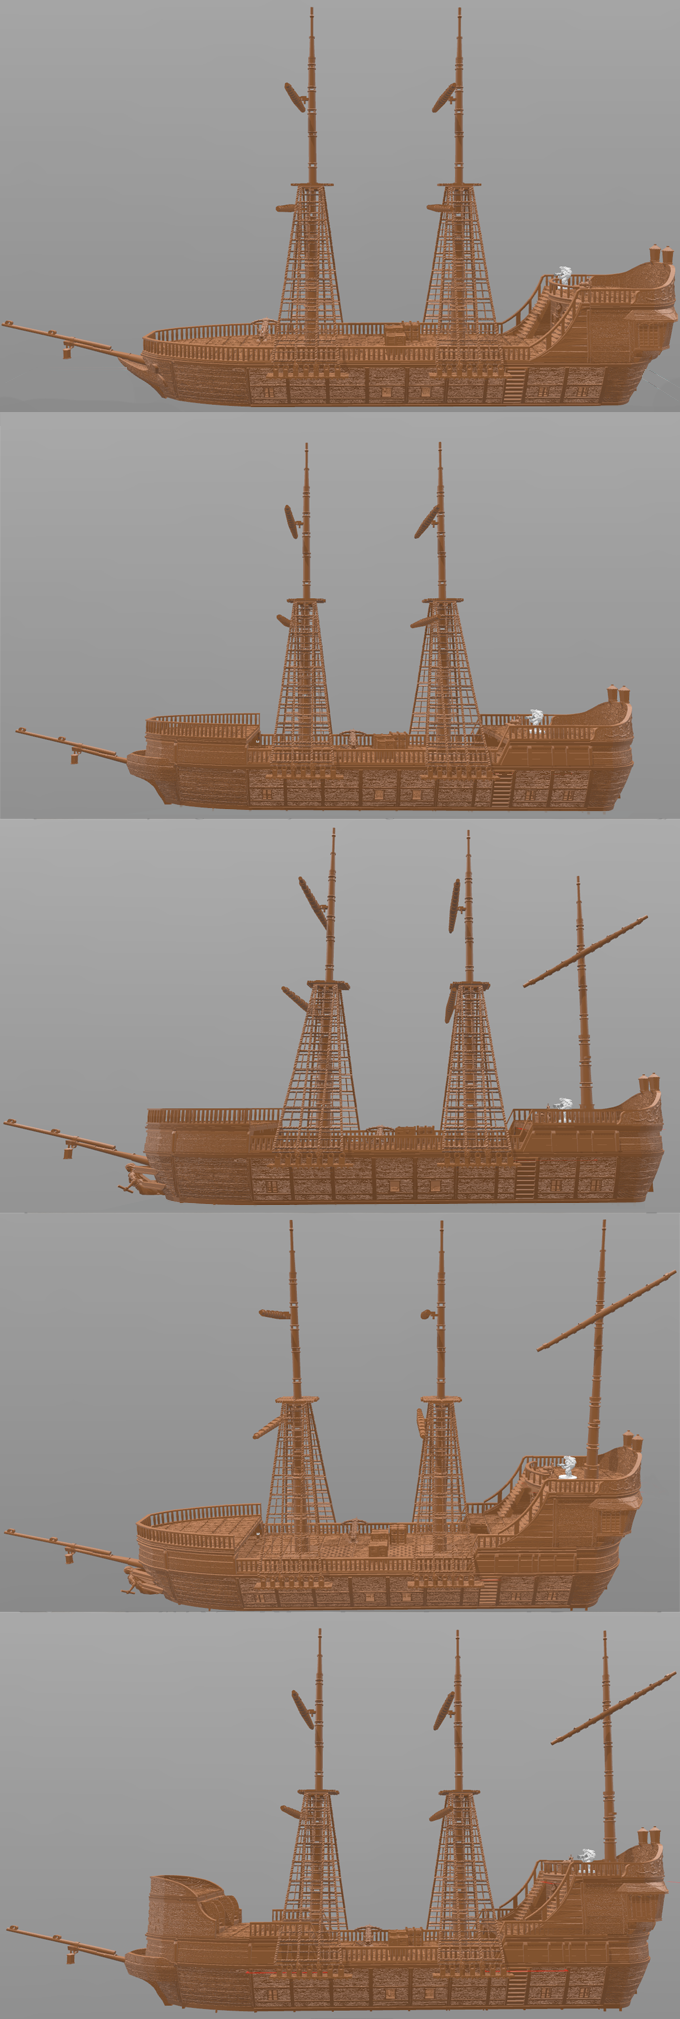 Shipworks 3d Printable Ship Terrain By Chris Hunt Kickstarter Trebuchet Diagram Sierram Licensed For Noncommercial Use Only A Few Variants From The Core Set To Peak Your Imagination